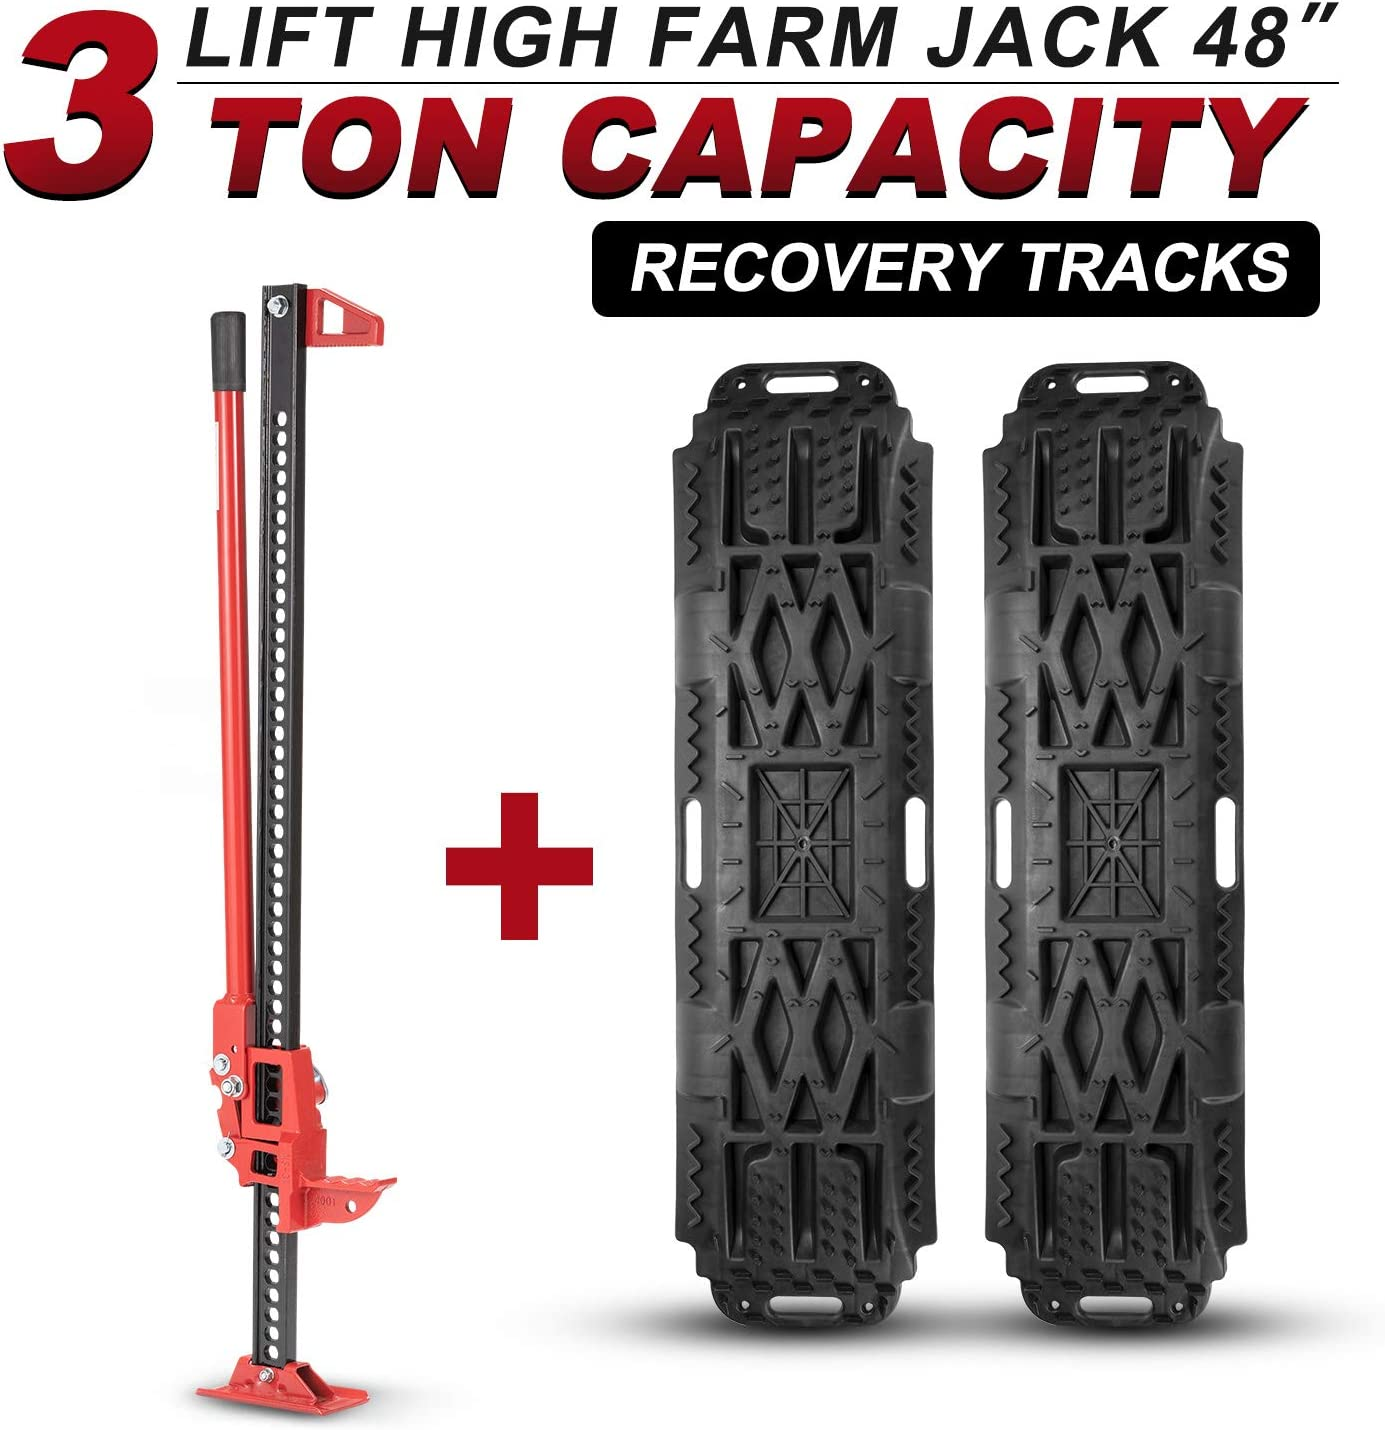 A Must Have Accessory for Hi Lift Jack and Farm Jack Base with 7/'/' x 4/'/' to Keep from Sinking The Jack into The Ground Lifting Jack Off Road Base//Stabilizer Made with Heavy-Duty Plastic to Last